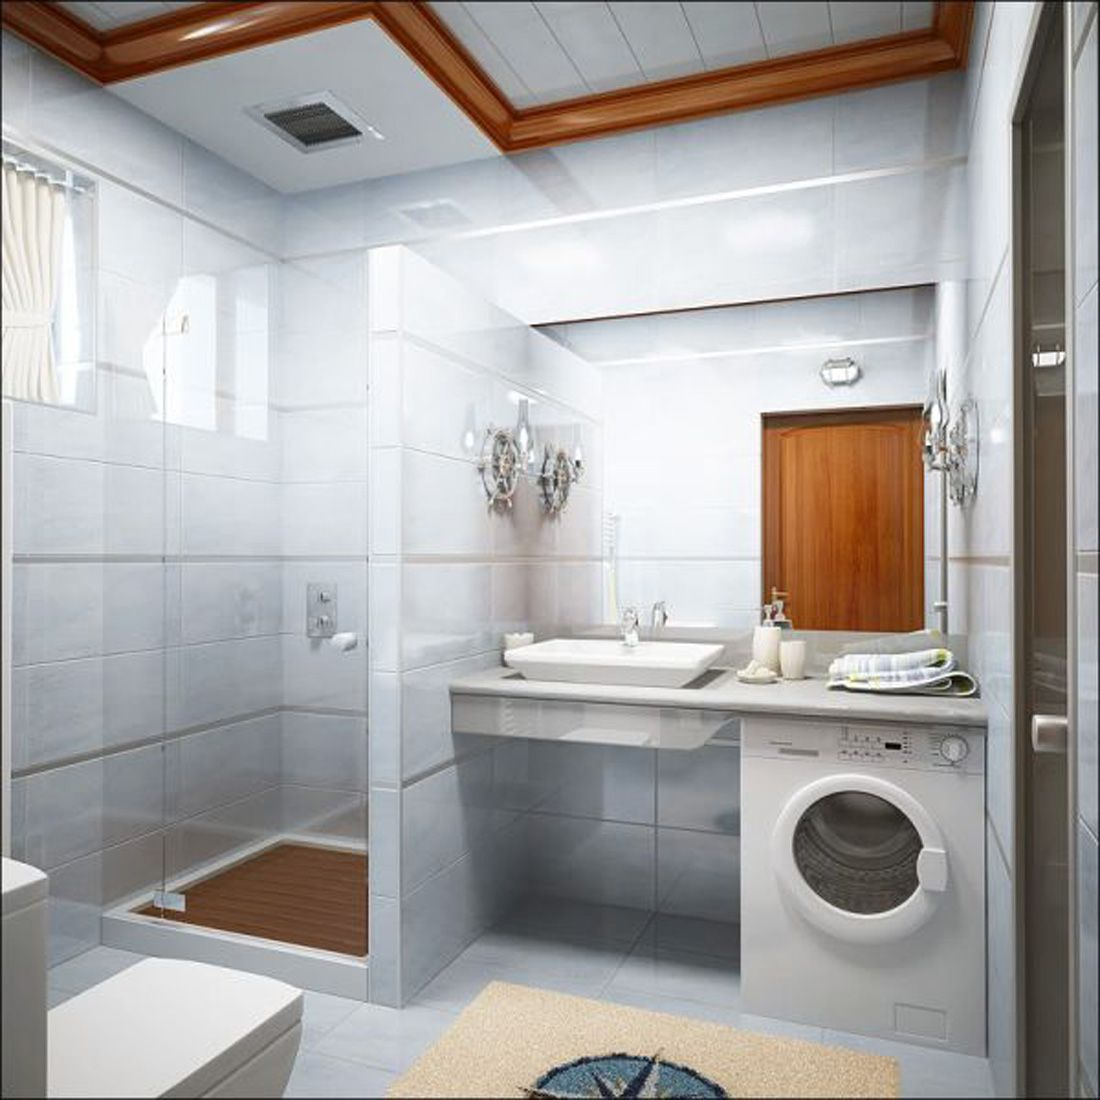 13+ Best Bathroom Remodel Ideas & Makeovers Design | Small bathroom ...